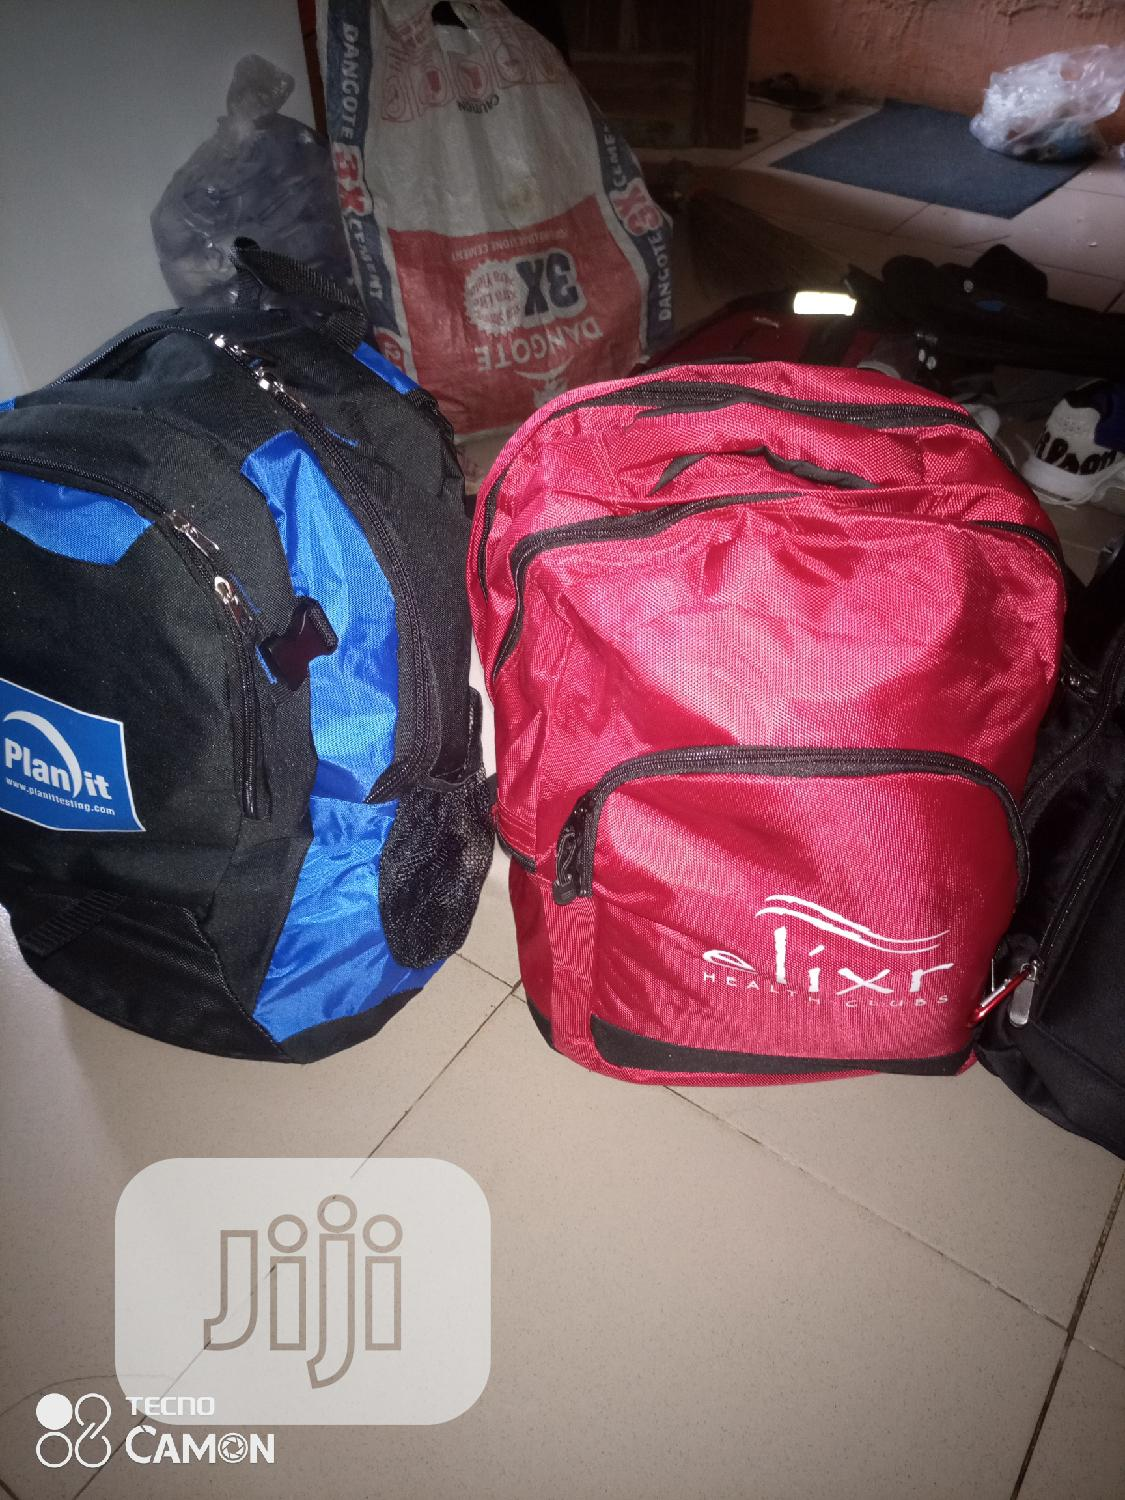 School/Office And Traveling Bags.